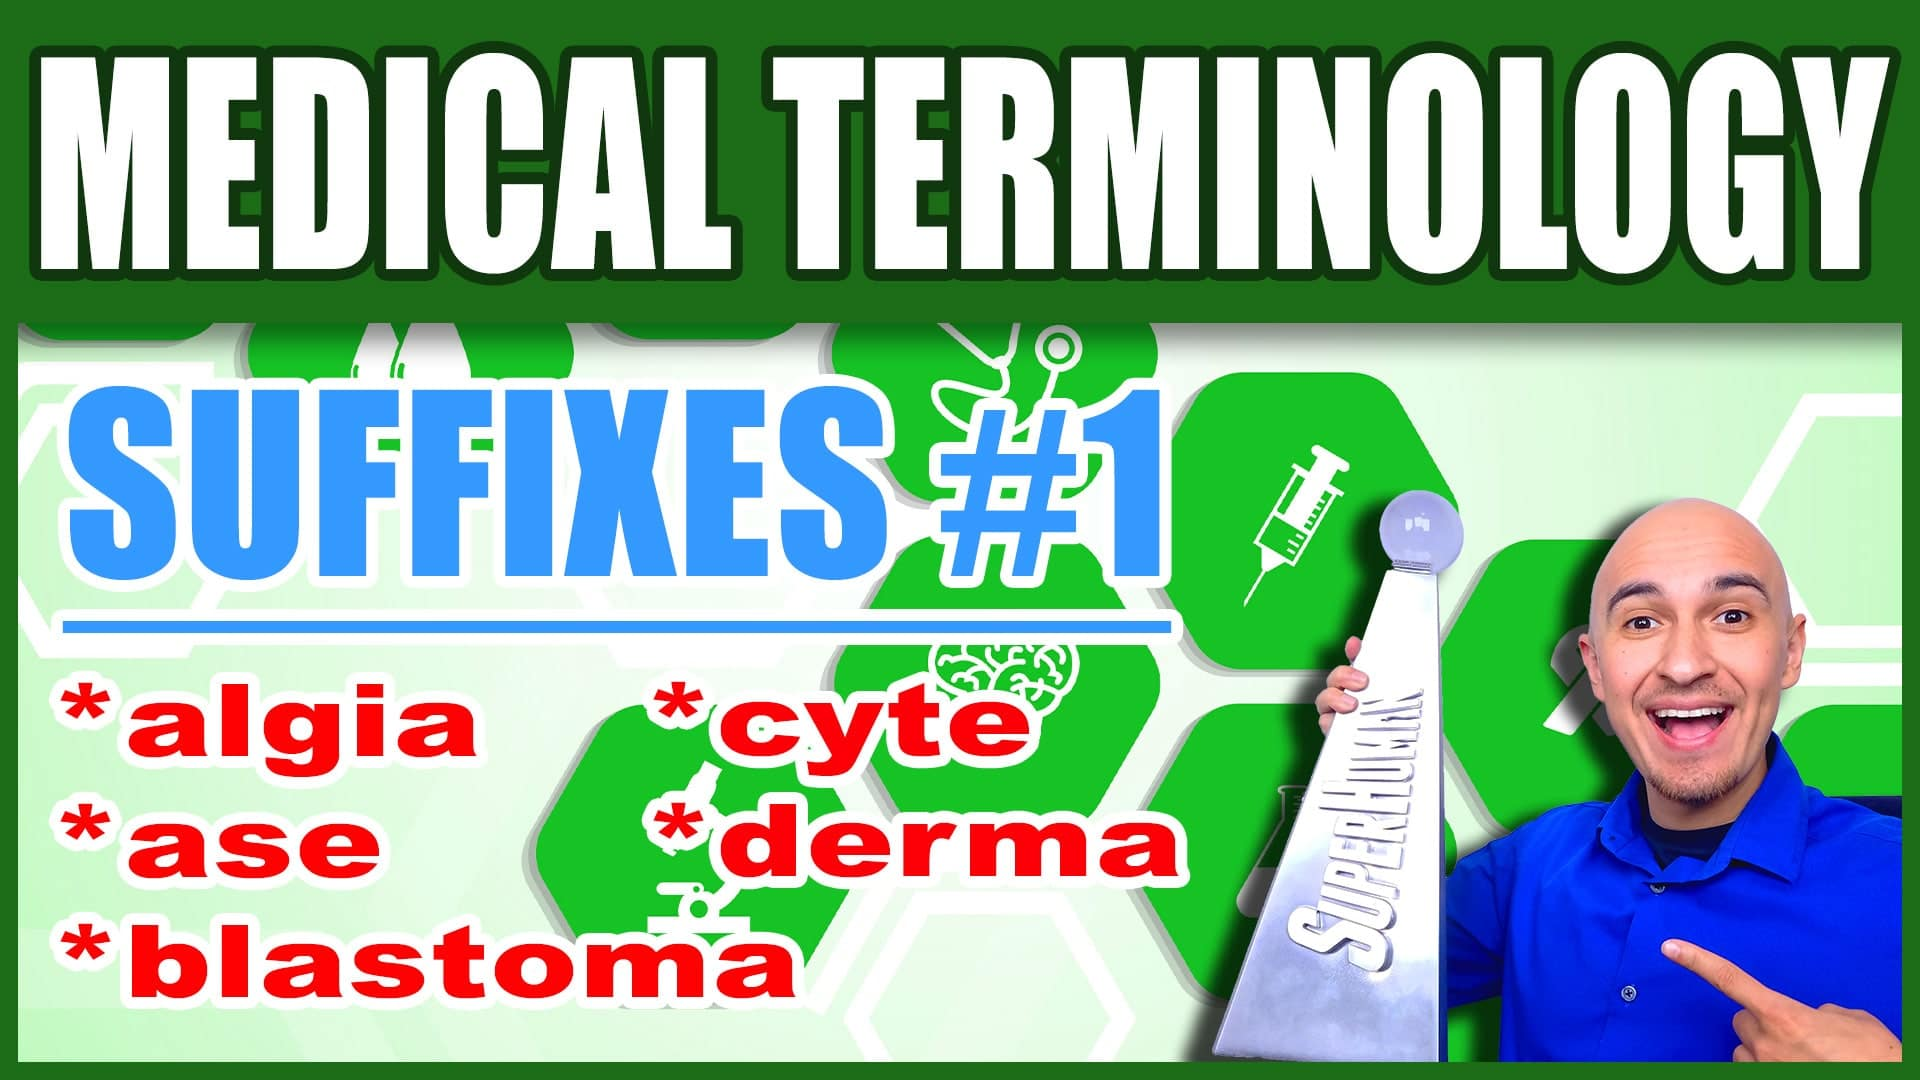 Medical Terminology suffixes 1-min